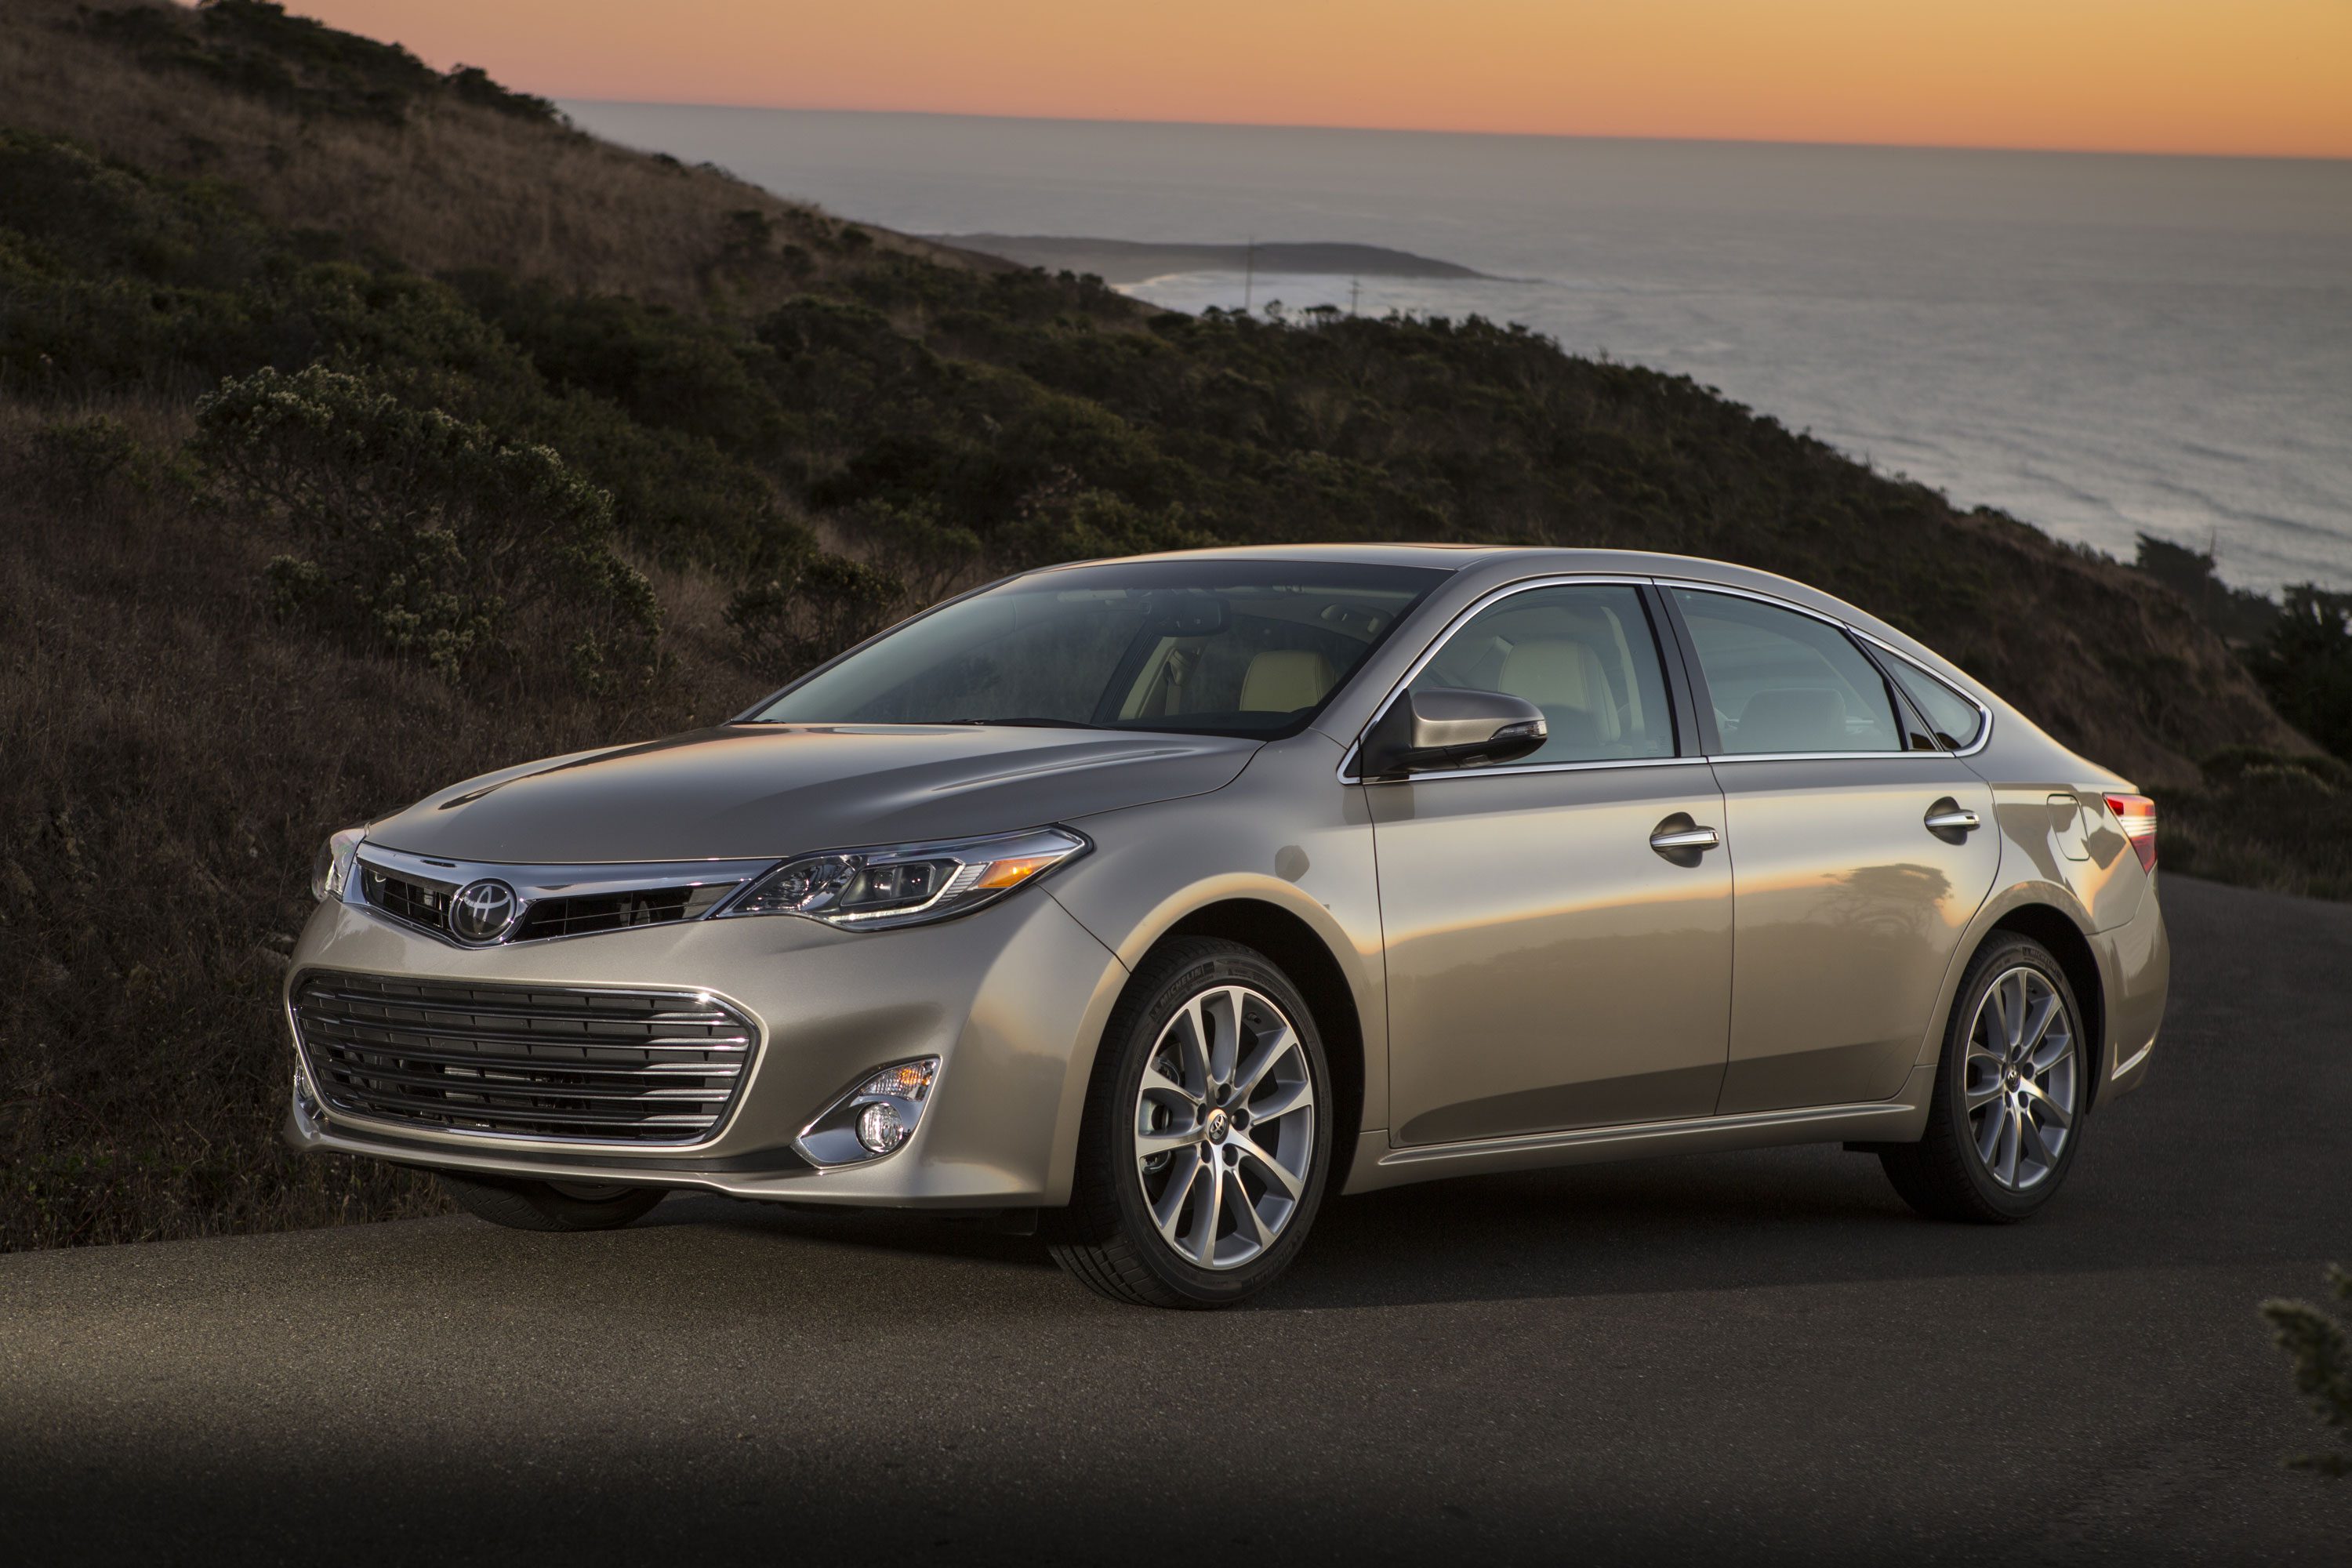 2014 toyota avalon review ratings specs prices and photos the car connection. Black Bedroom Furniture Sets. Home Design Ideas